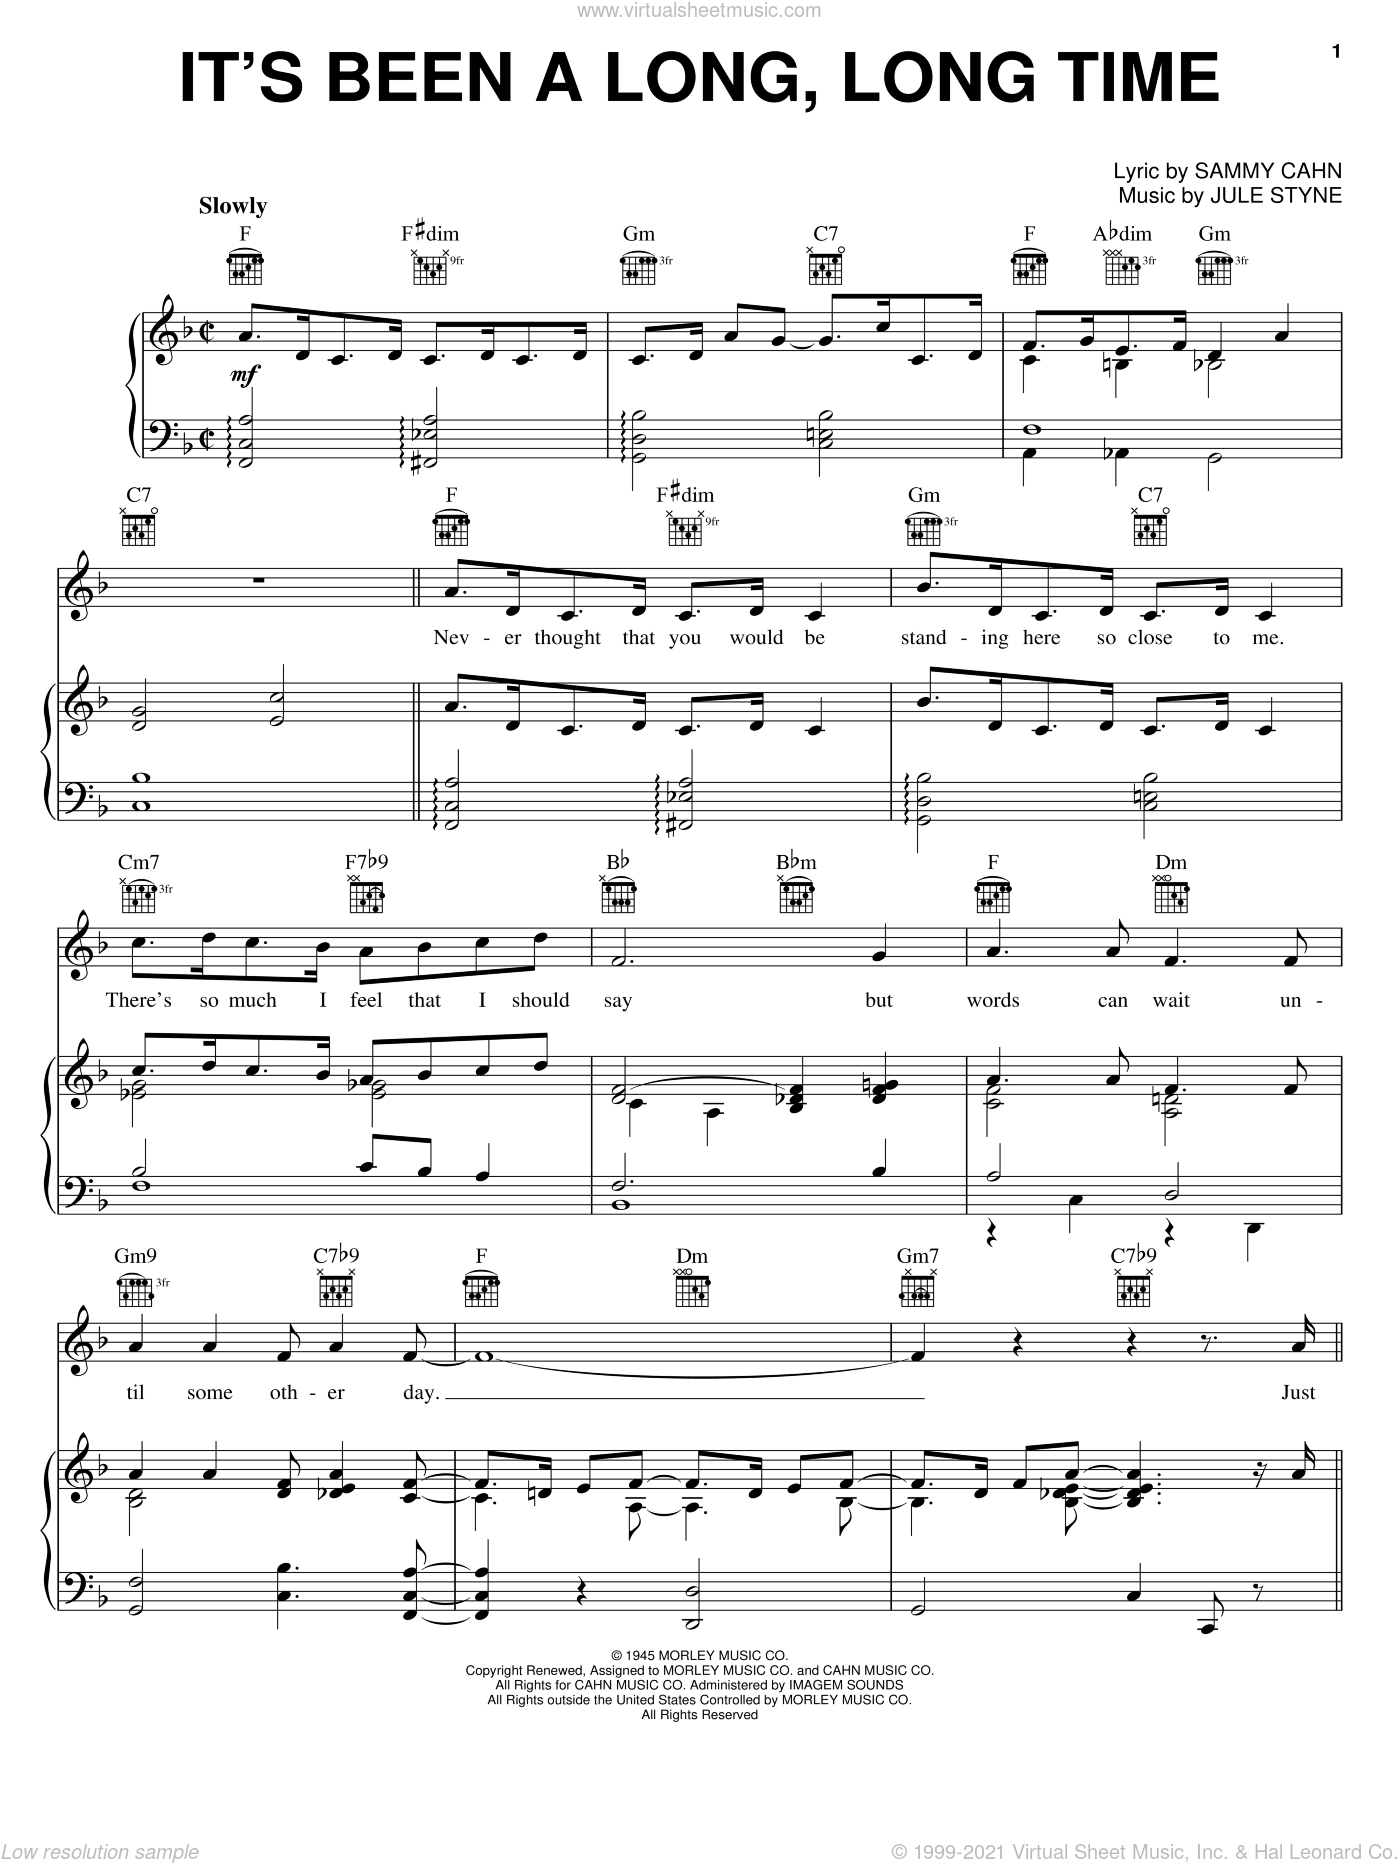 It's Been A Long, Long Time sheet music for voice, piano or guitar by Harry James, Bing Crosby, Frank Sinatra, June Christy, Perry Como, Jule Styne and Sammy Cahn, intermediate skill level